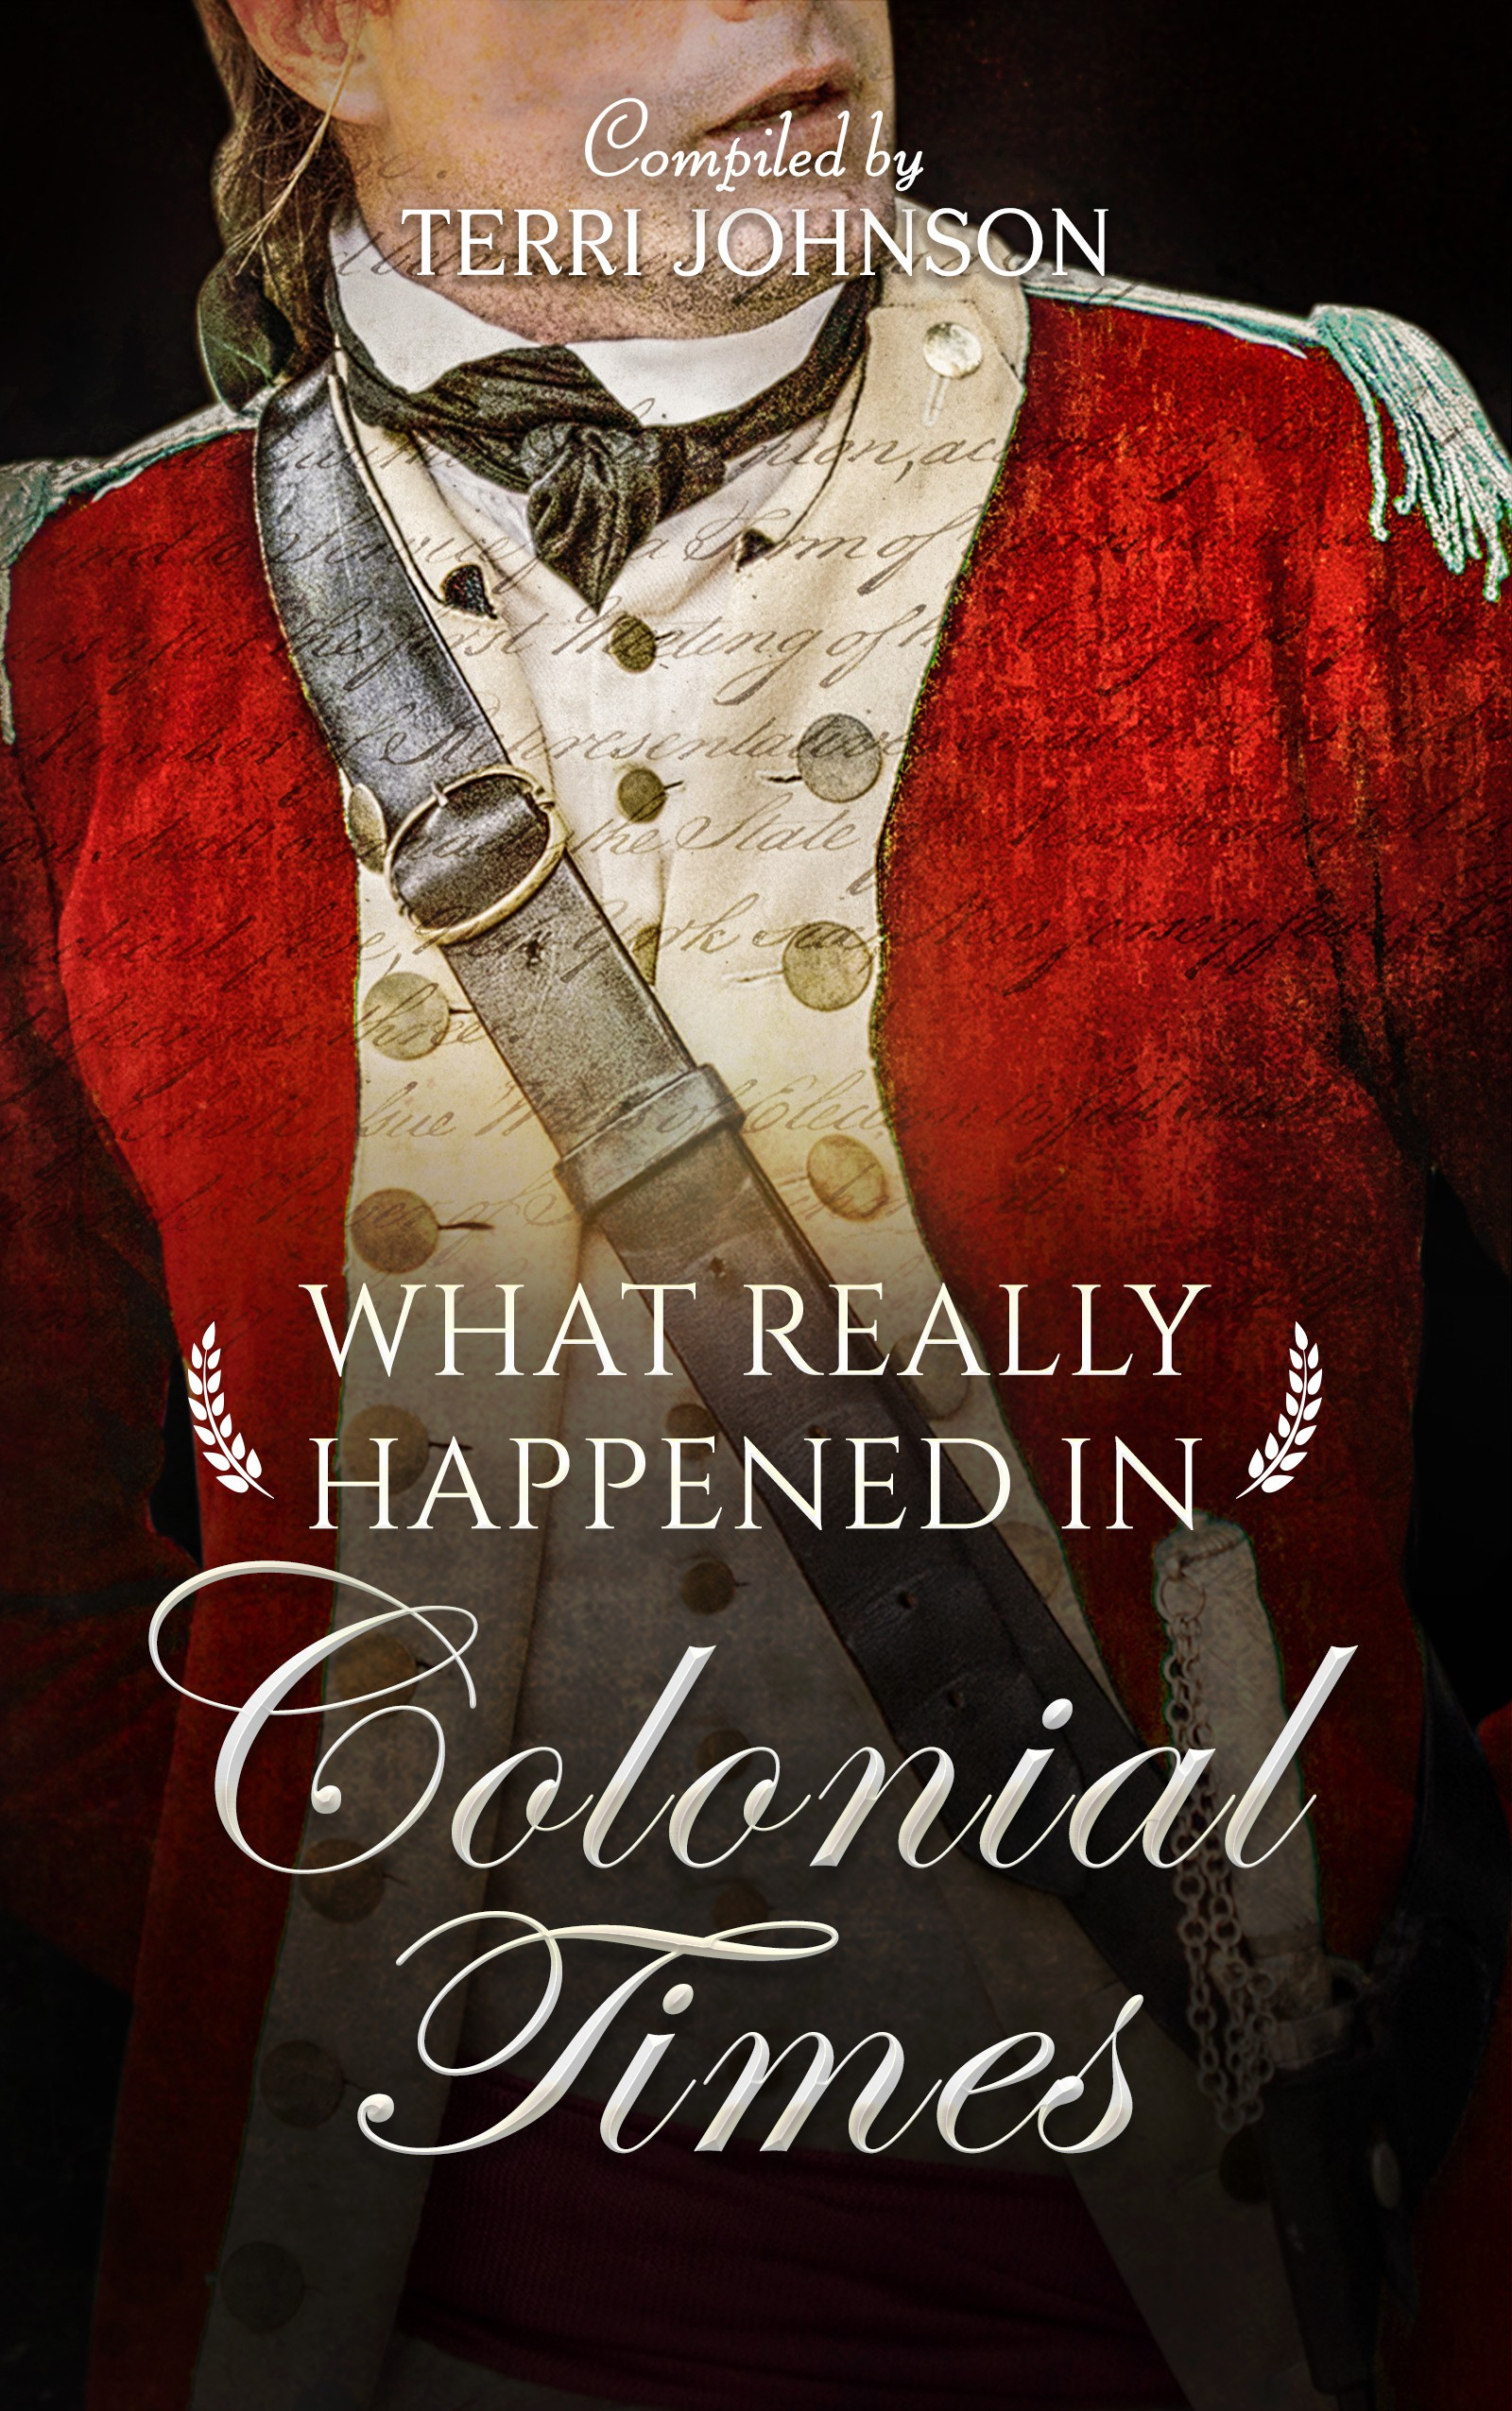 What Really Happened in Colonial Times